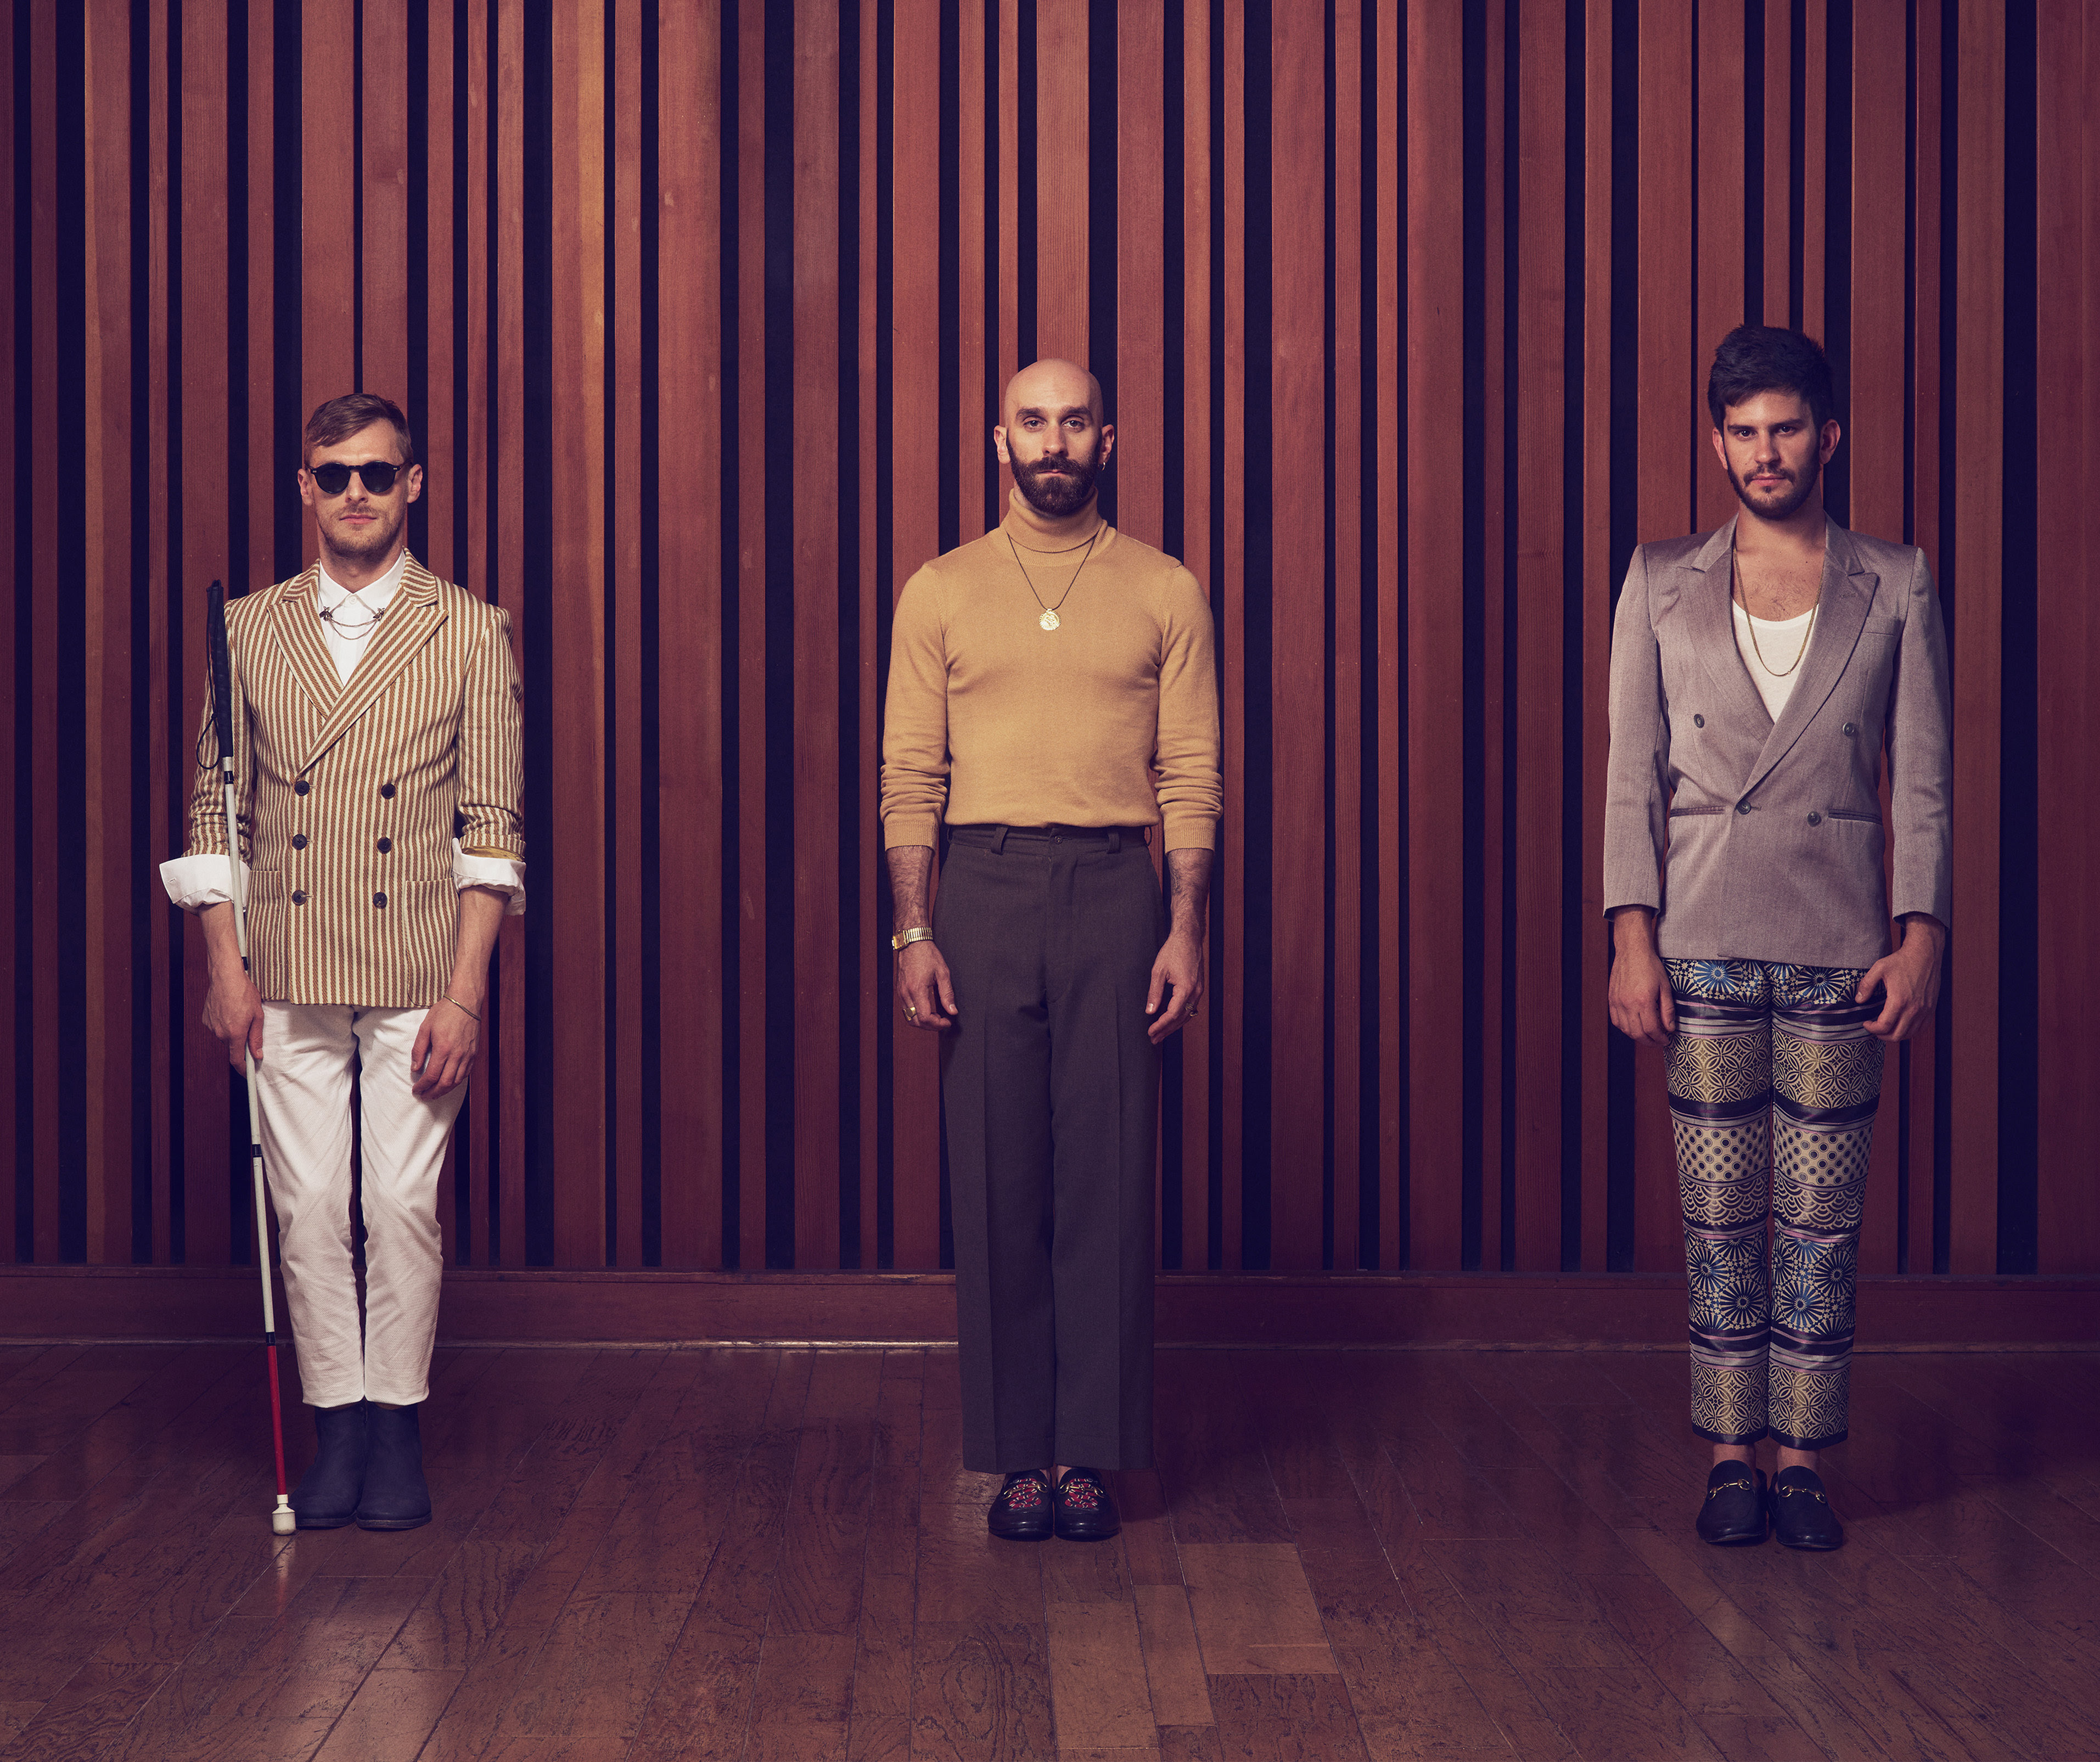 """X Ambassadors release soulful new song """"Don't Stay"""""""